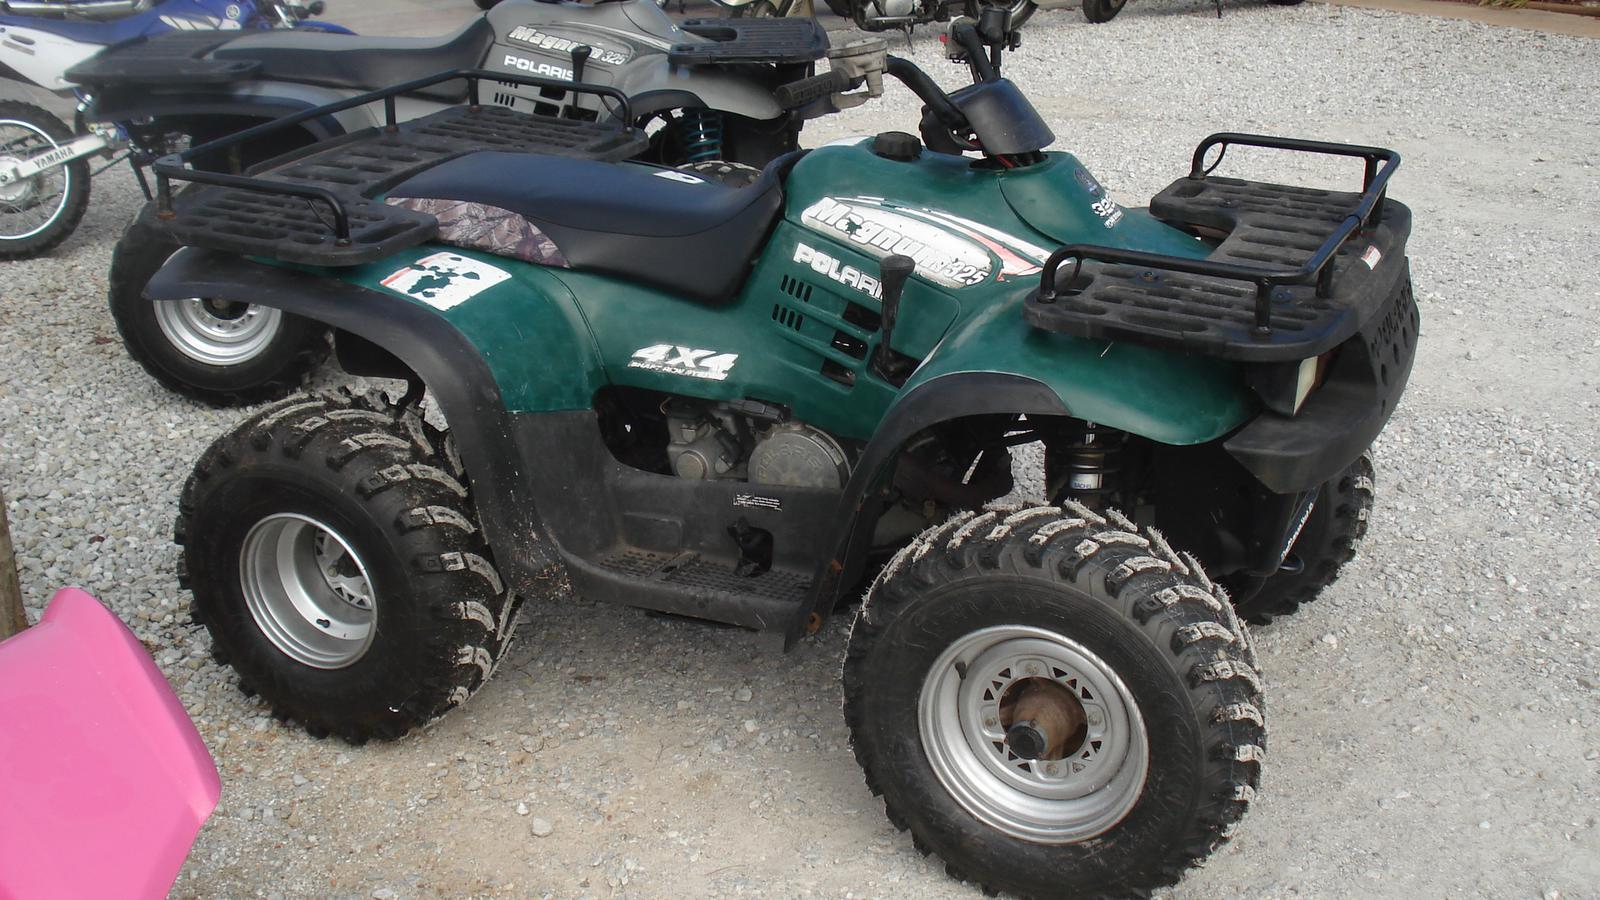 2000 Polaris Industries 325 Magnum 4x4 for sale in Neosho, MO | West 60  Cycle (417) 451-0871